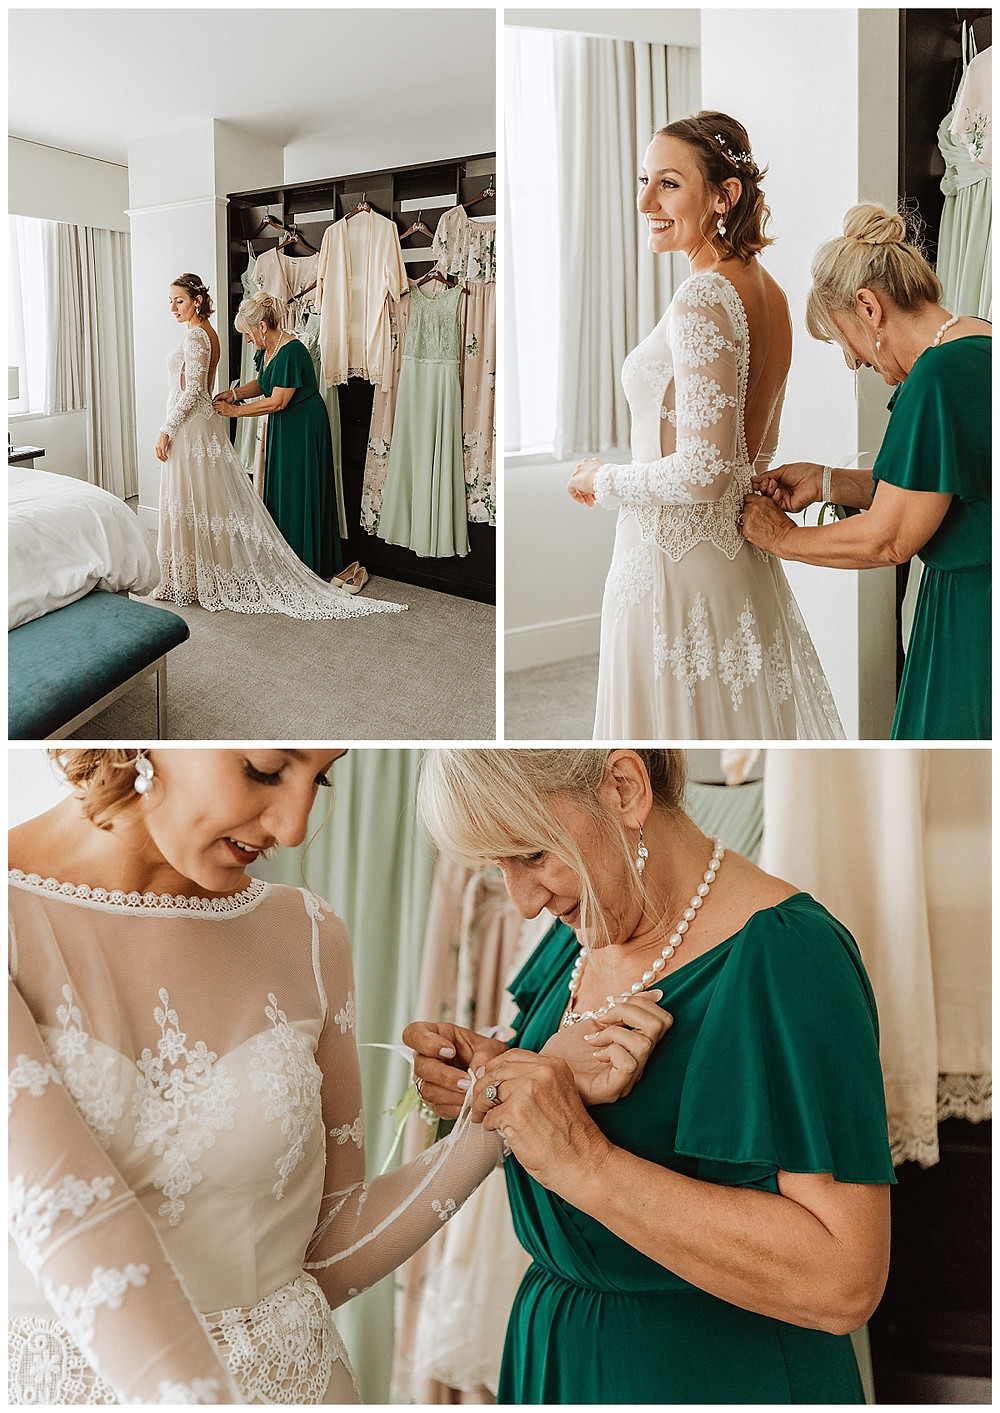 Bride Getting Ready Portraits in Dreamers and Lovers Dress